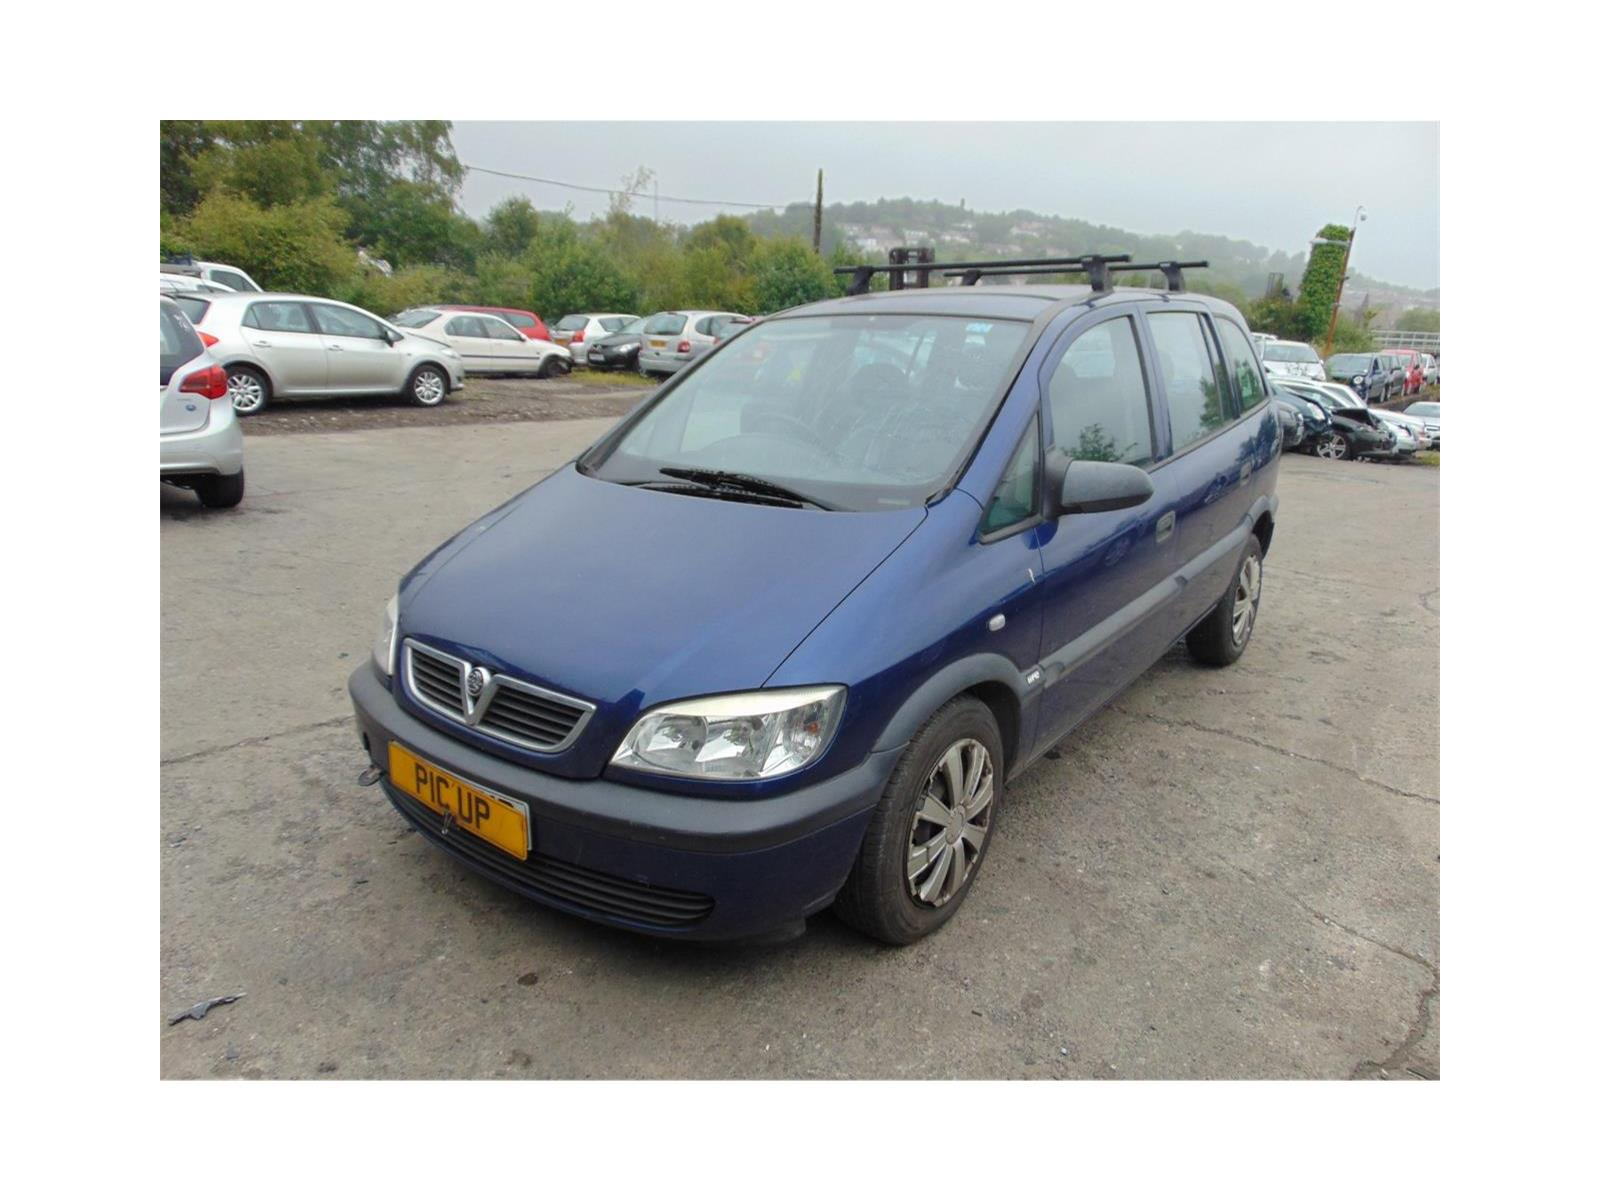 Pic Up Spares Vauxhall Zafira Ref 59787 Vehicle